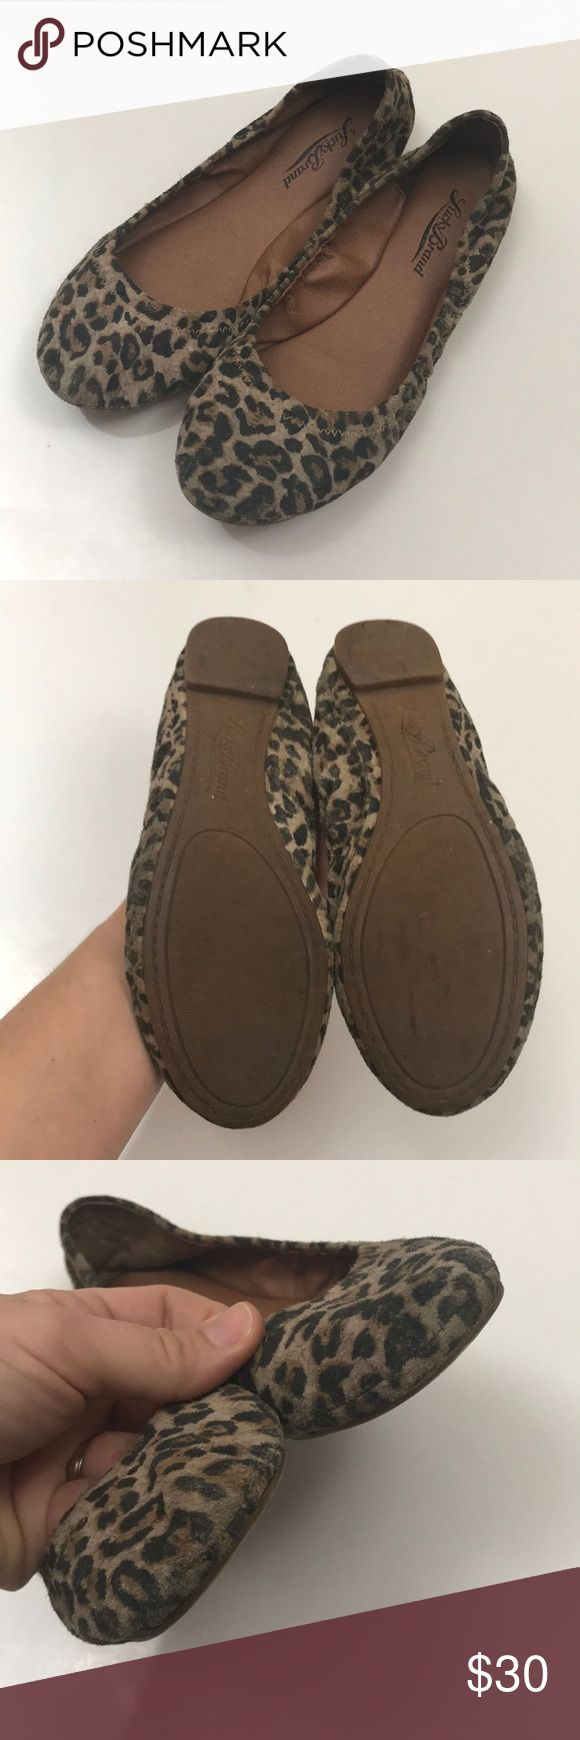 "Lucky Brand Animal Print Ballet Flats Condition - good shape, normal wear from wearing  Color- multi   Measurements - bottom of the sole Toe to heel - 9.5"" Widest part - 2.75"" Heel - .25""  No box.   S12117/0 Lucky Brand Shoes Flats & Loafers"